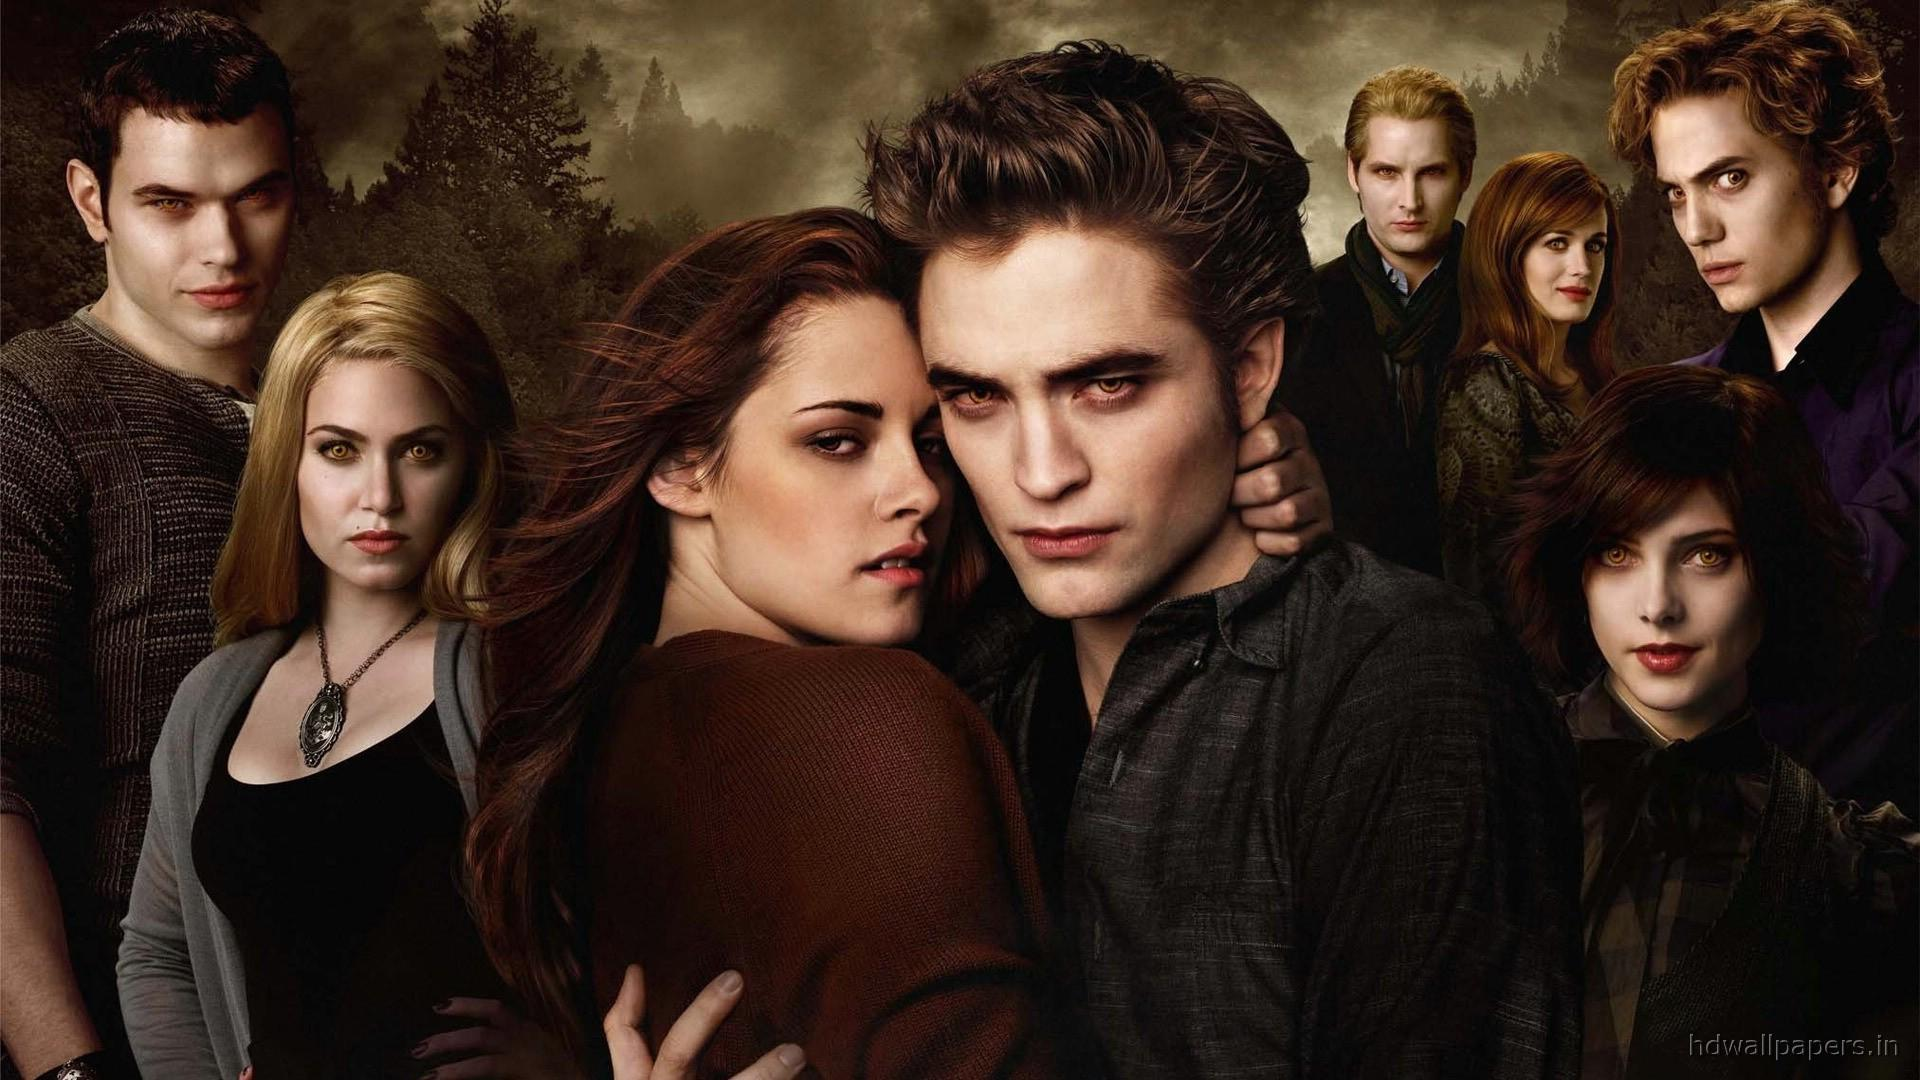 Which out of these names are the Cullens?